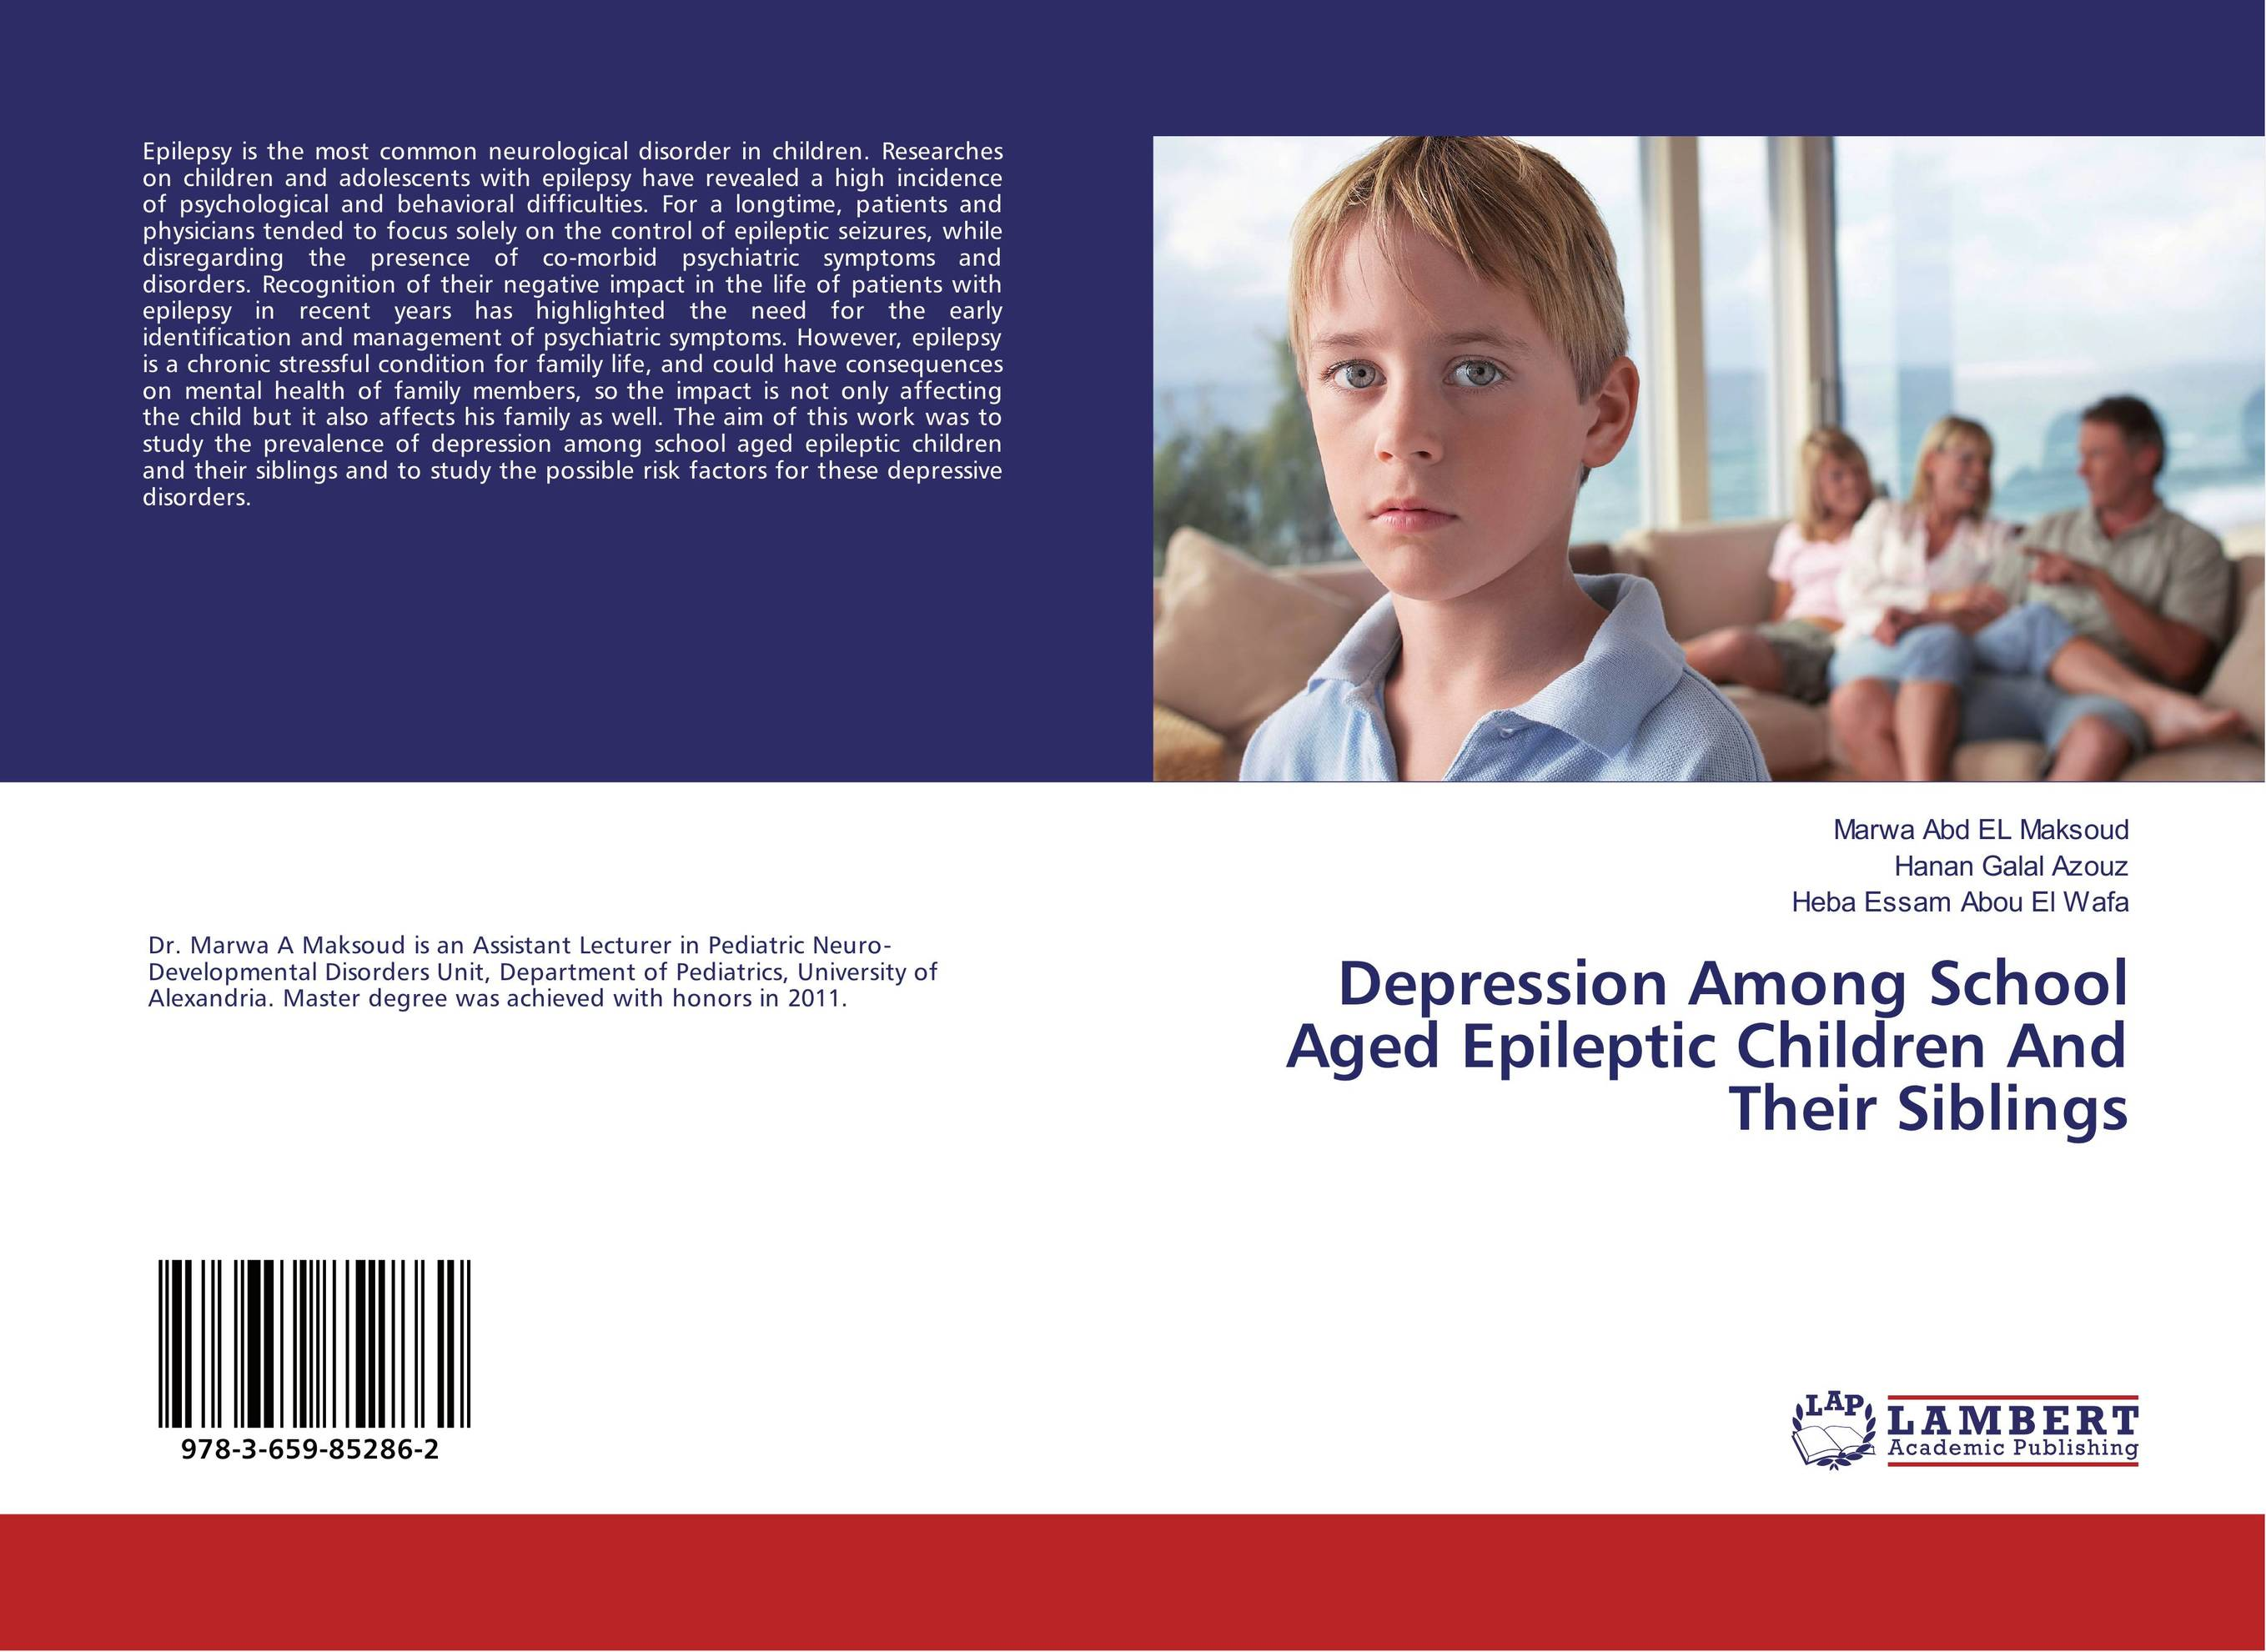 Depression Among School Aged Epileptic Children And Their Siblings epilepsy in children psychological concerns